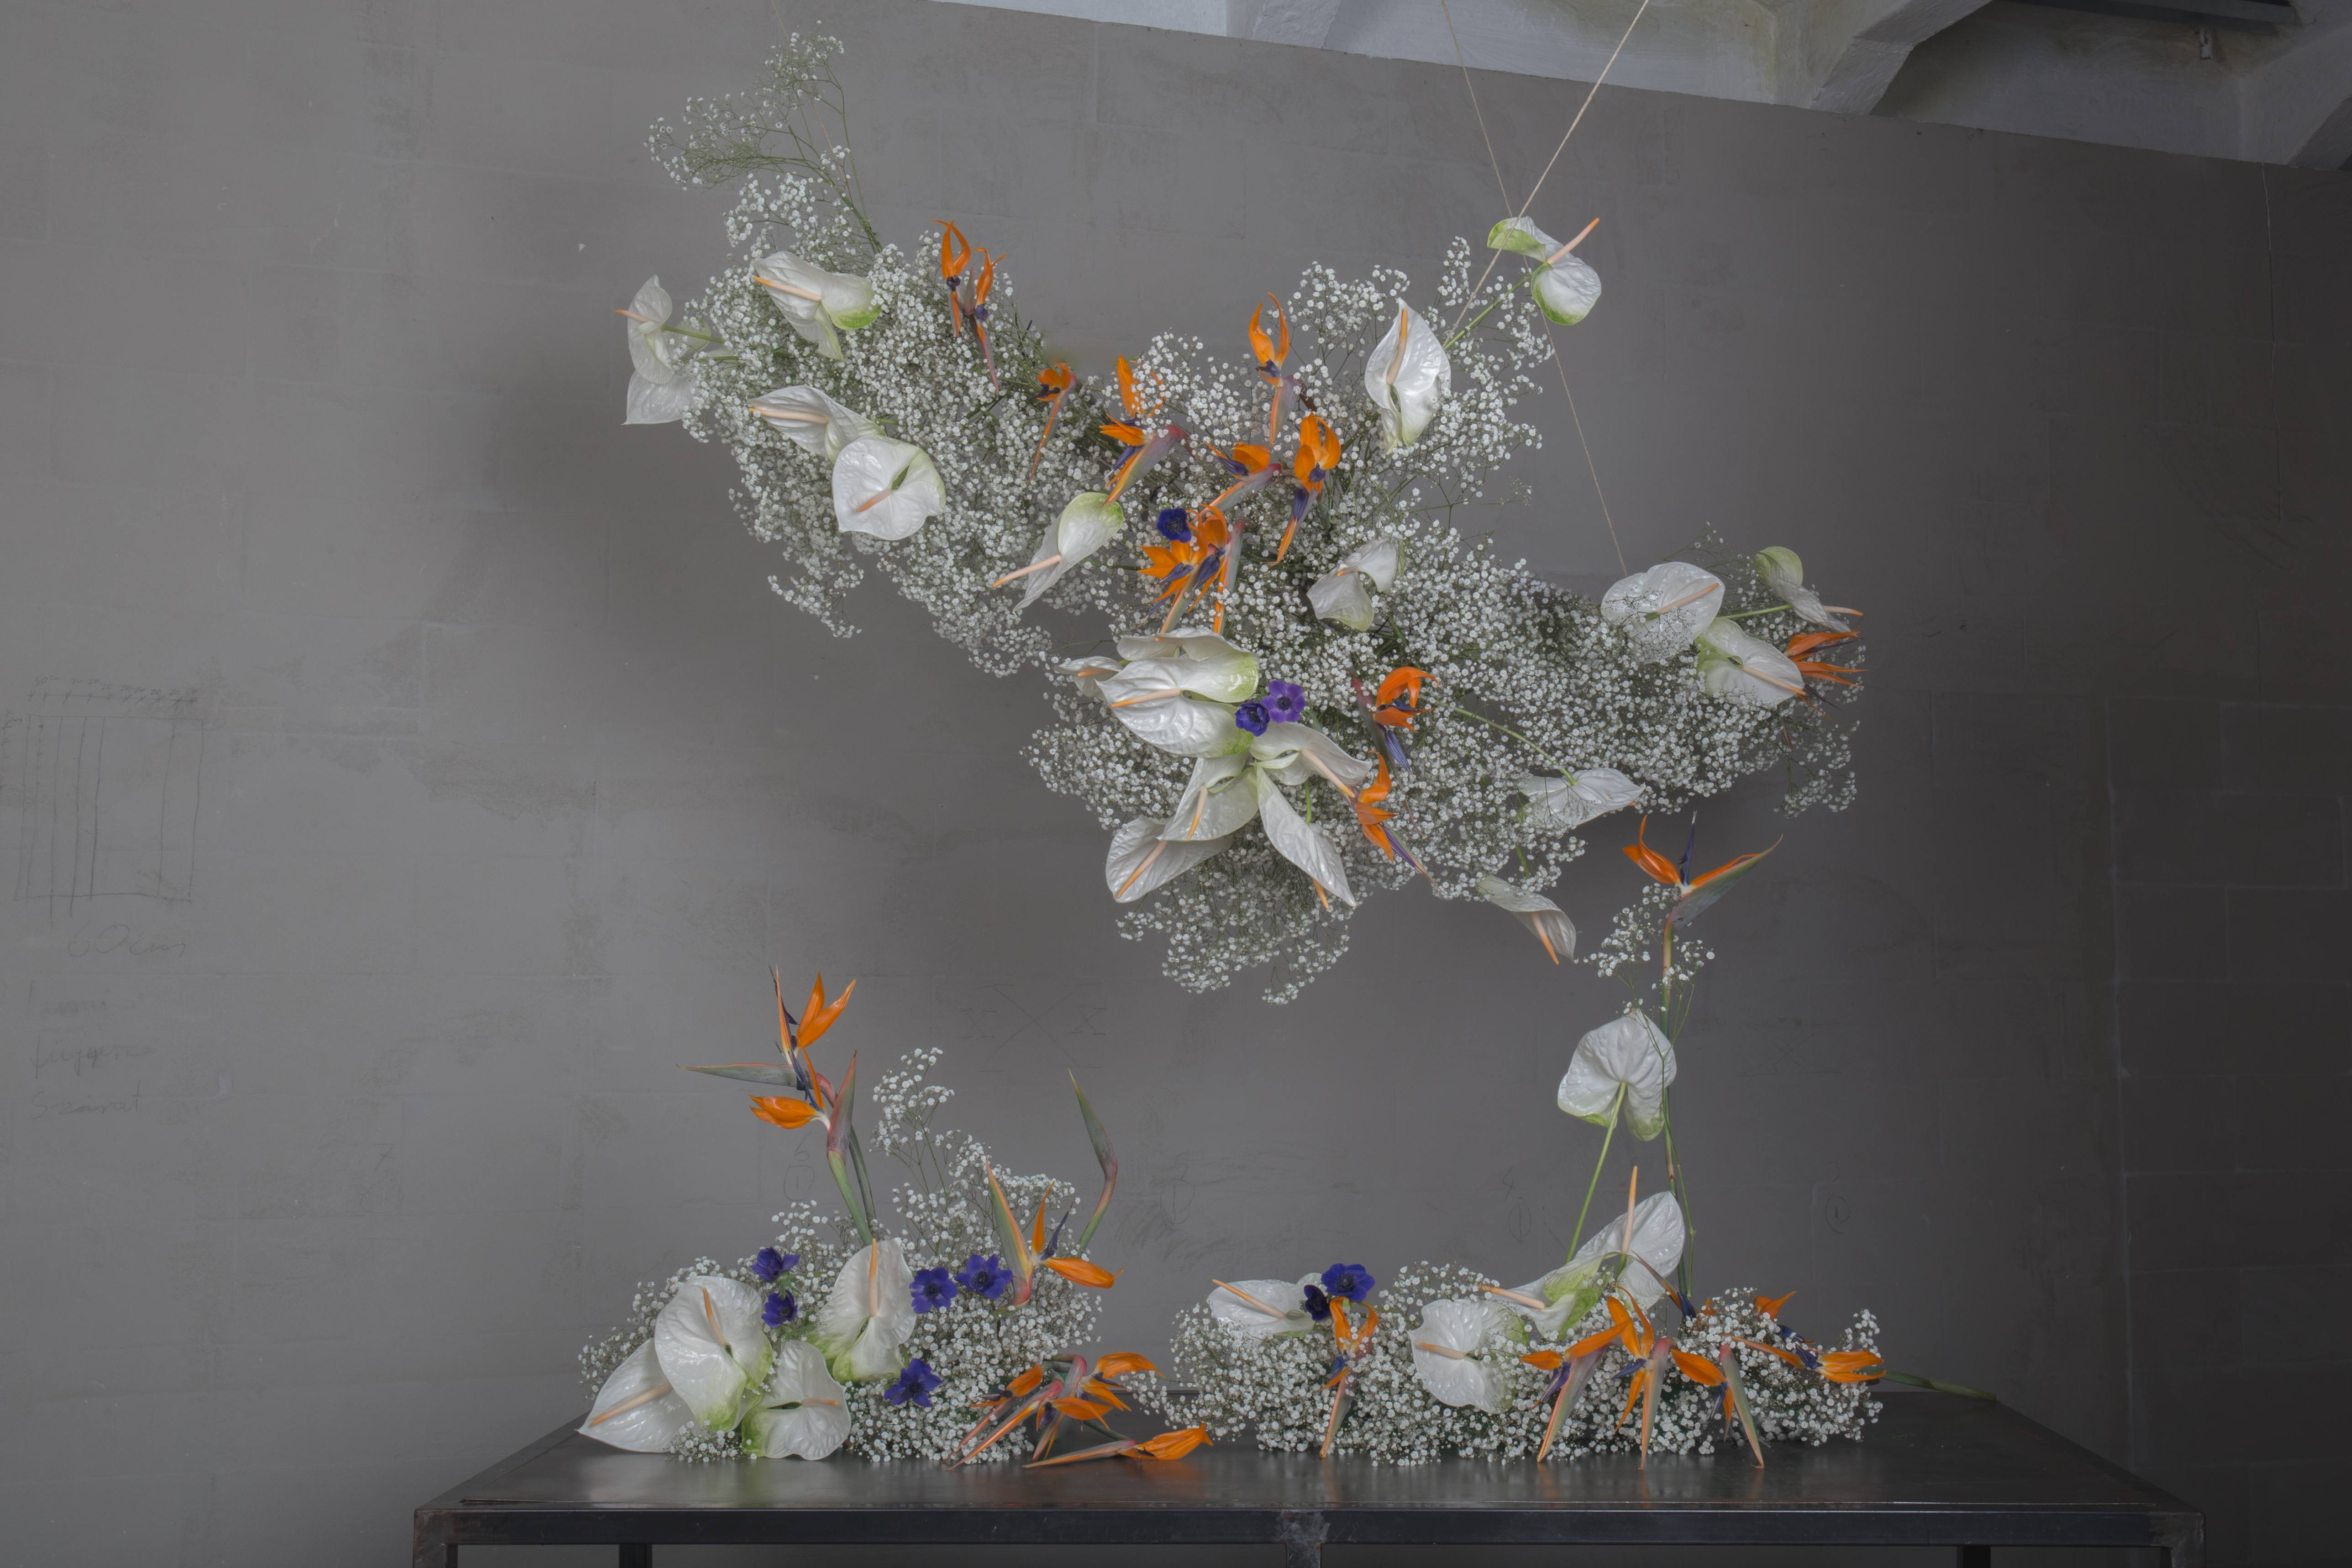 Main-hanging-centerpiece-and-table-pieces-Finecut-weddings-collection-4-2019-homogeneity-and-harmony-with-gypsophila-and-strelitzia-known-as-the-bird-of-paradise